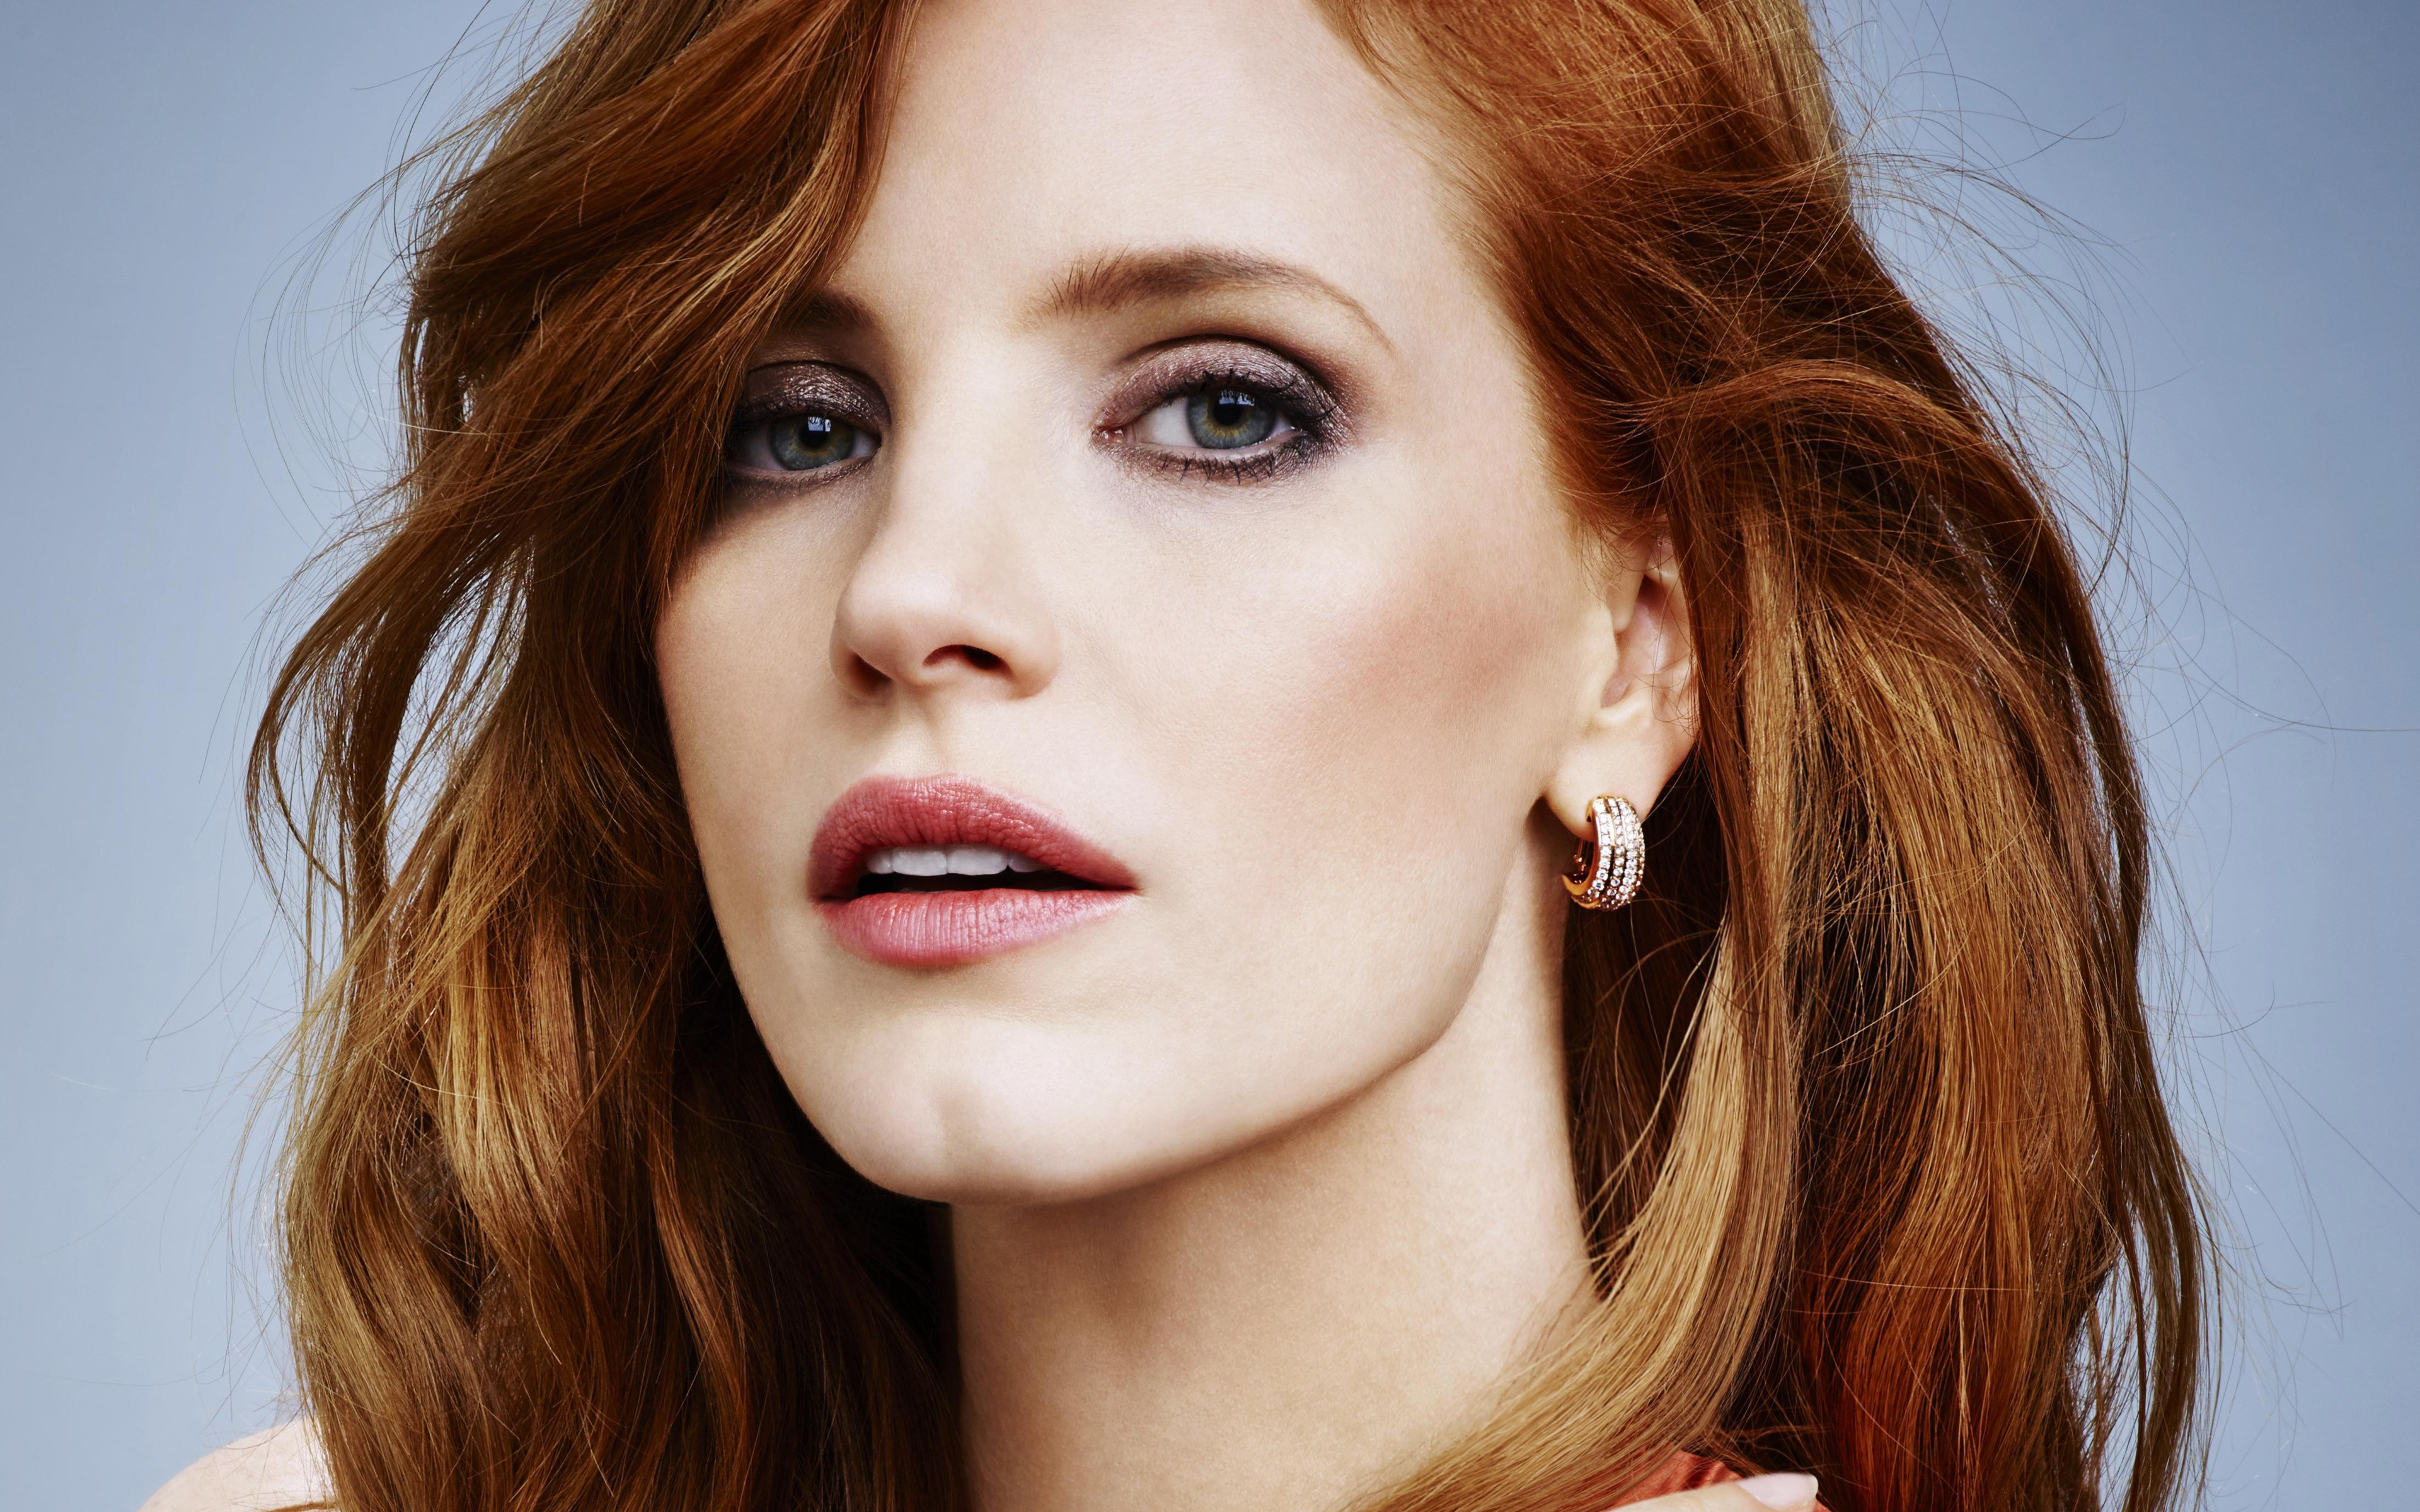 3840x2400 - Jessica Chastain Wallpapers 15